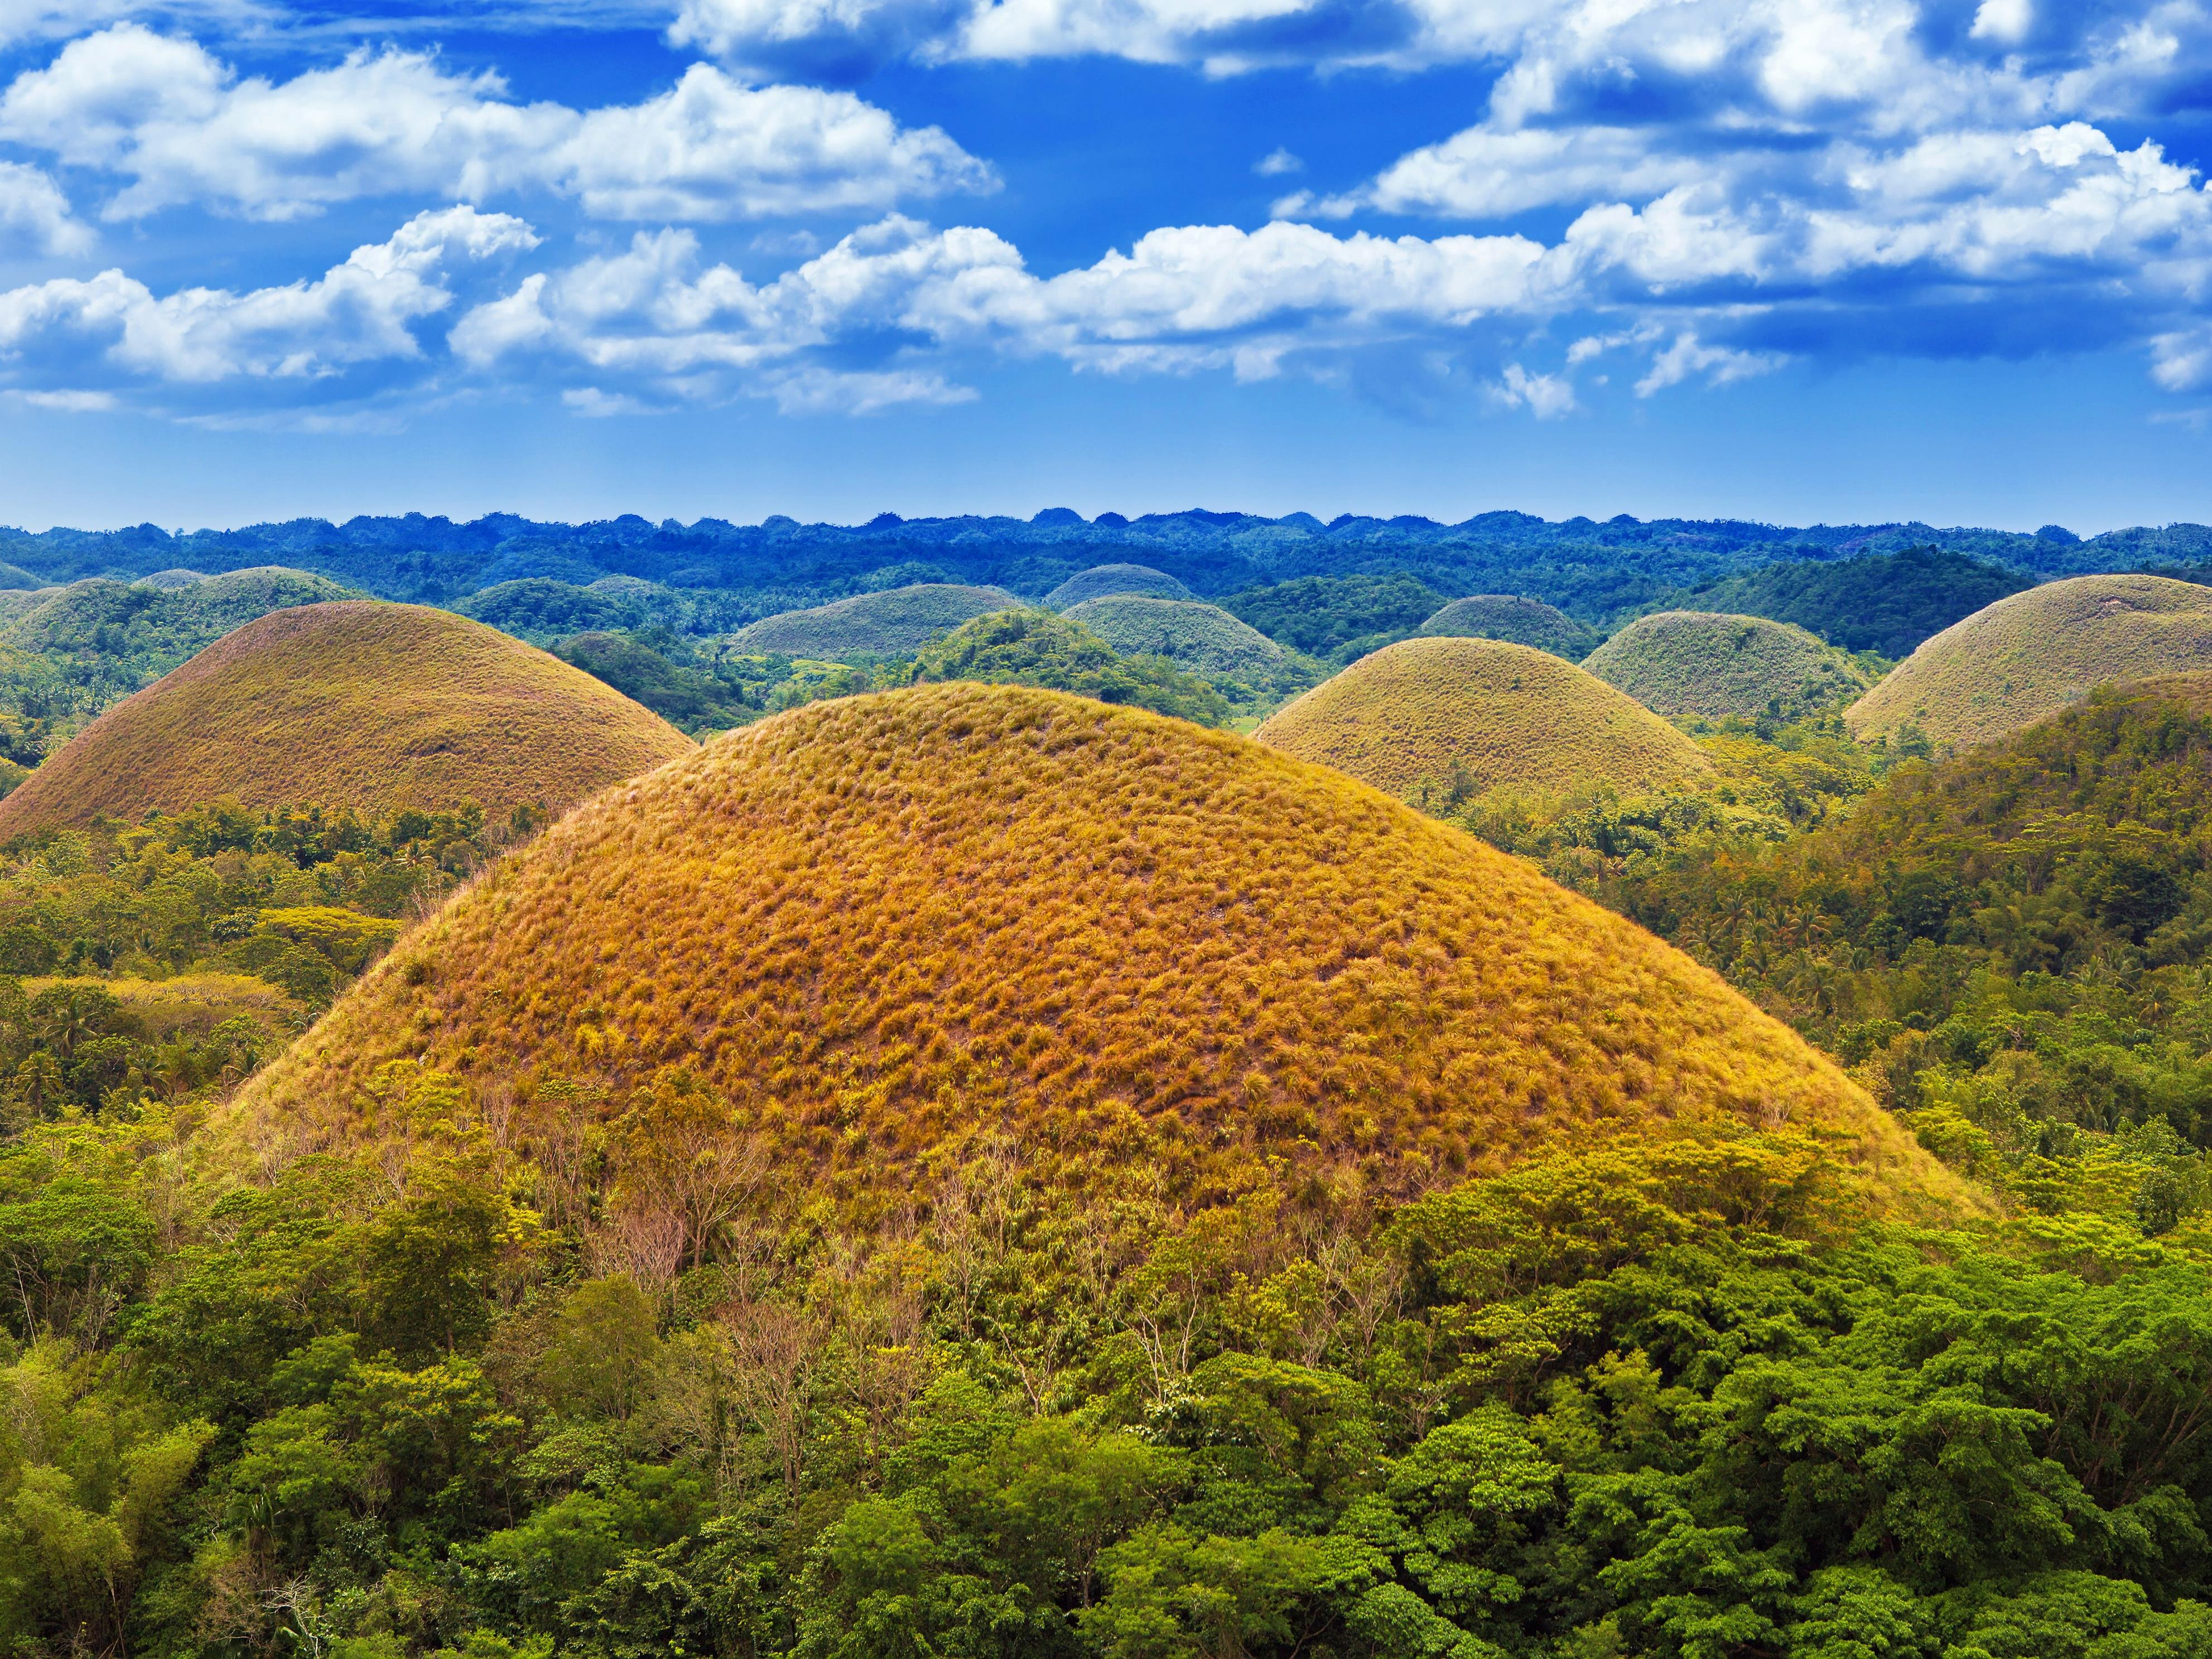 Slide 15 of 51: Varying in height from 98 feet to 393 feet, the Chocolate Hills are known for their odd cone shapes. During dry season, the grass turns a distinct brown color, reminiscent of chocolate. There are more than 1,268 cone-shaped hills covering an area of 31 miles.